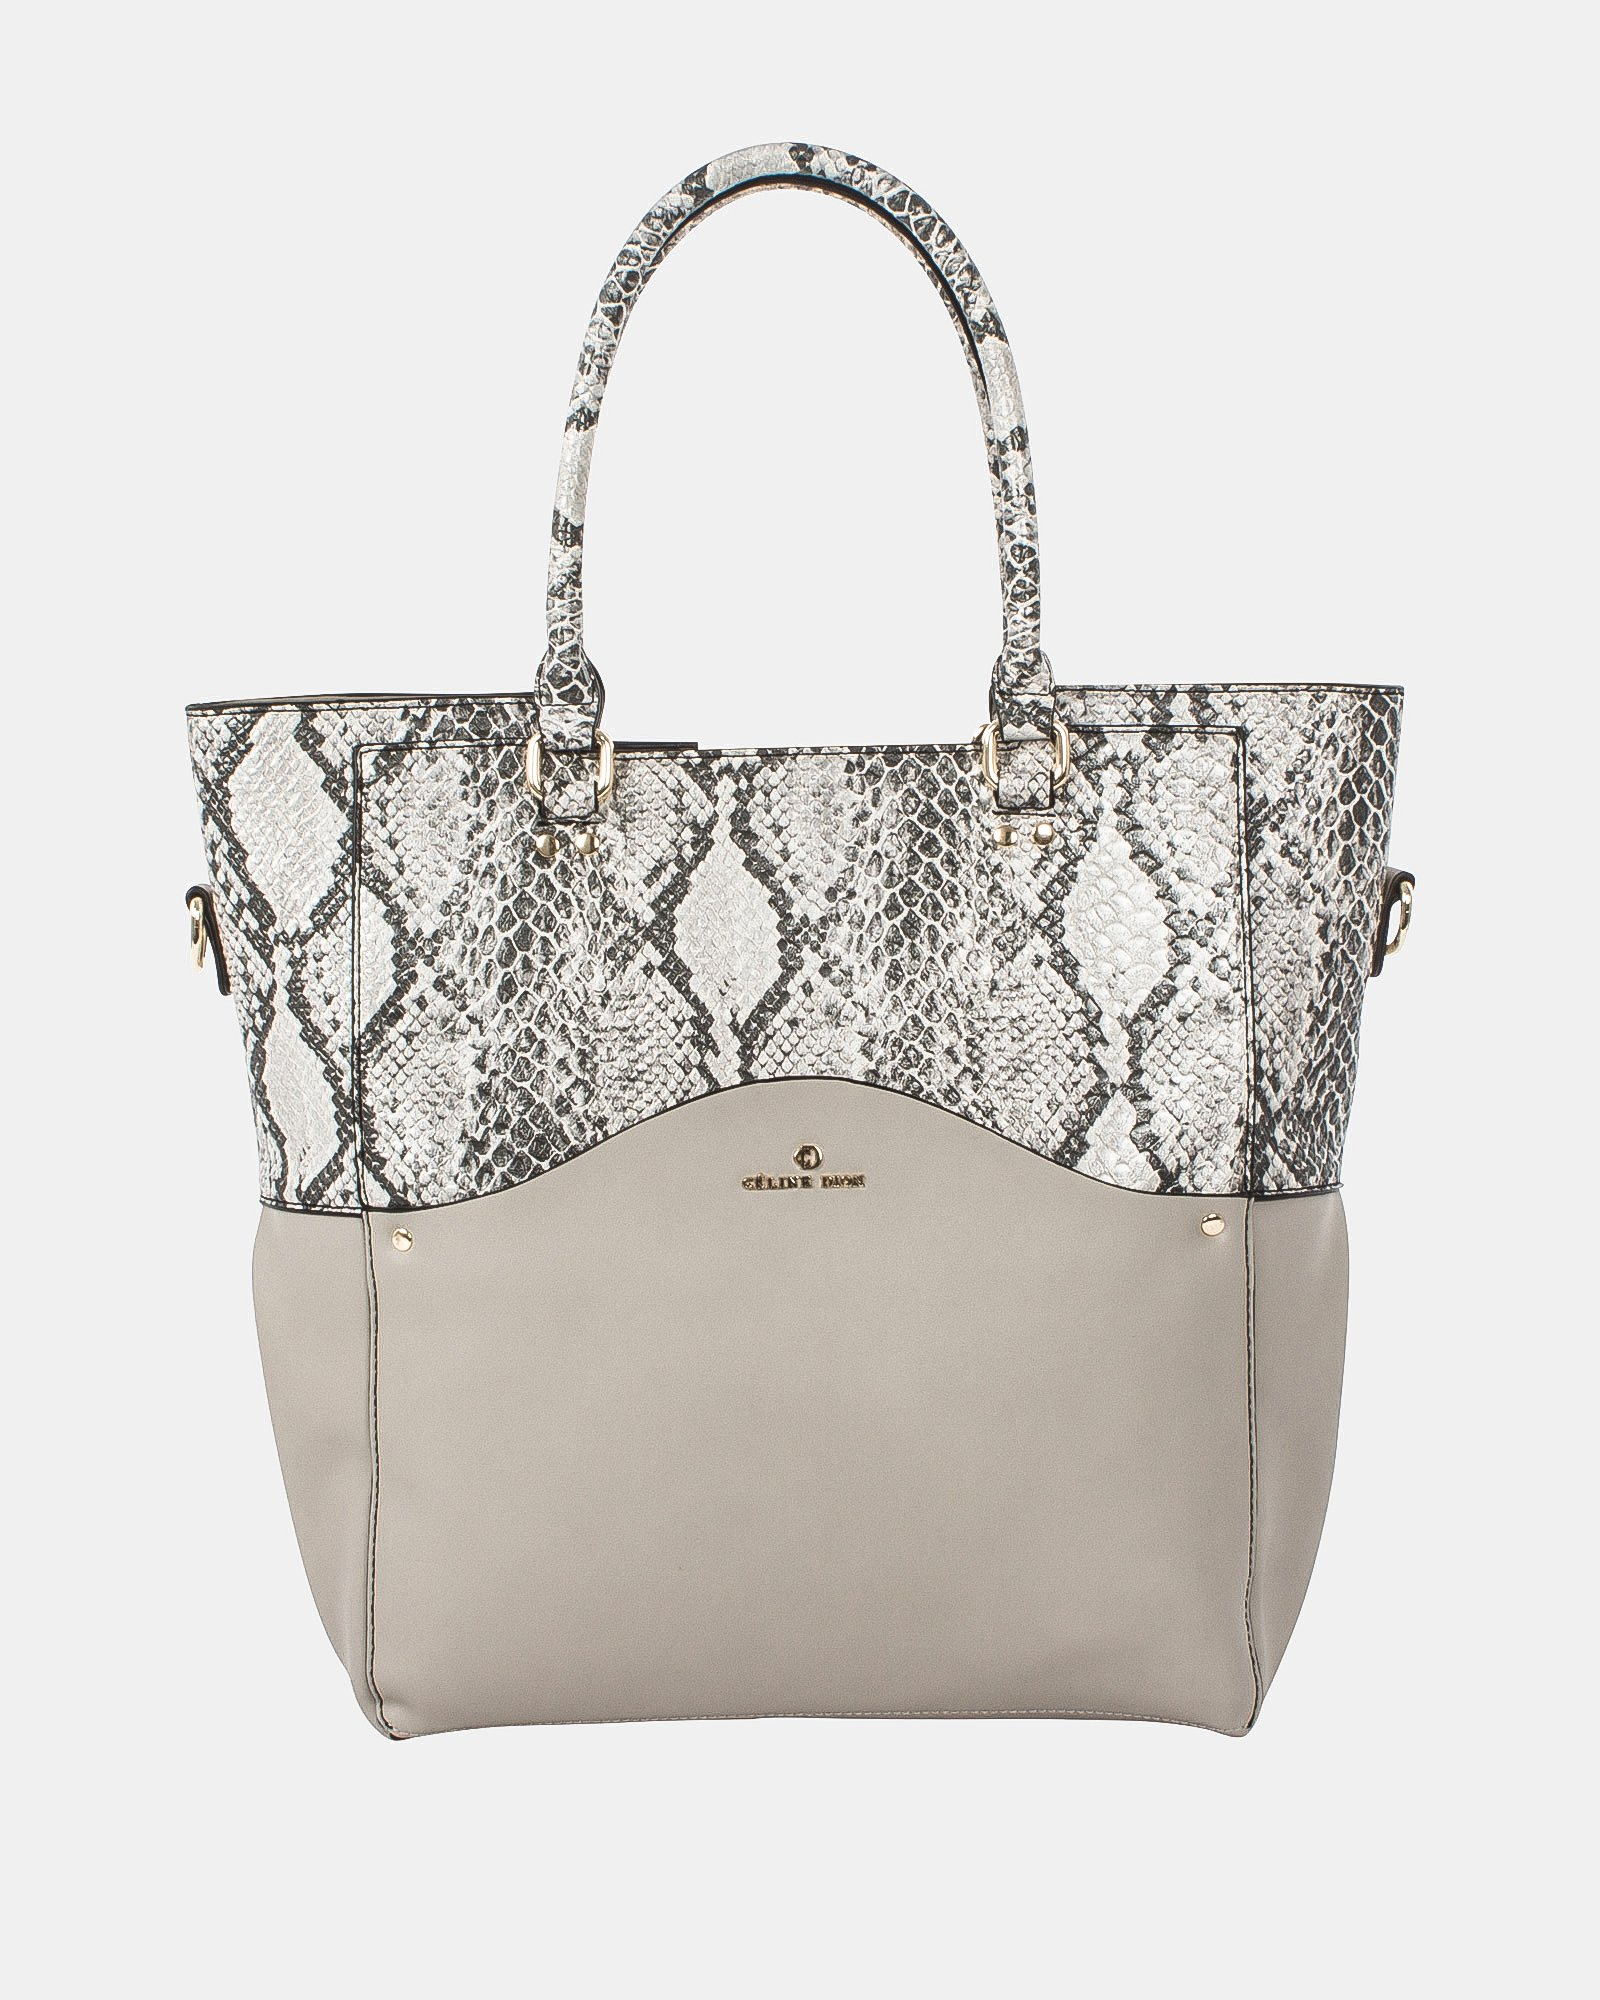 MOTIF - Tote Bag with removable and ajustable strap - LTgrey/snake - Céline Dion - Zoom